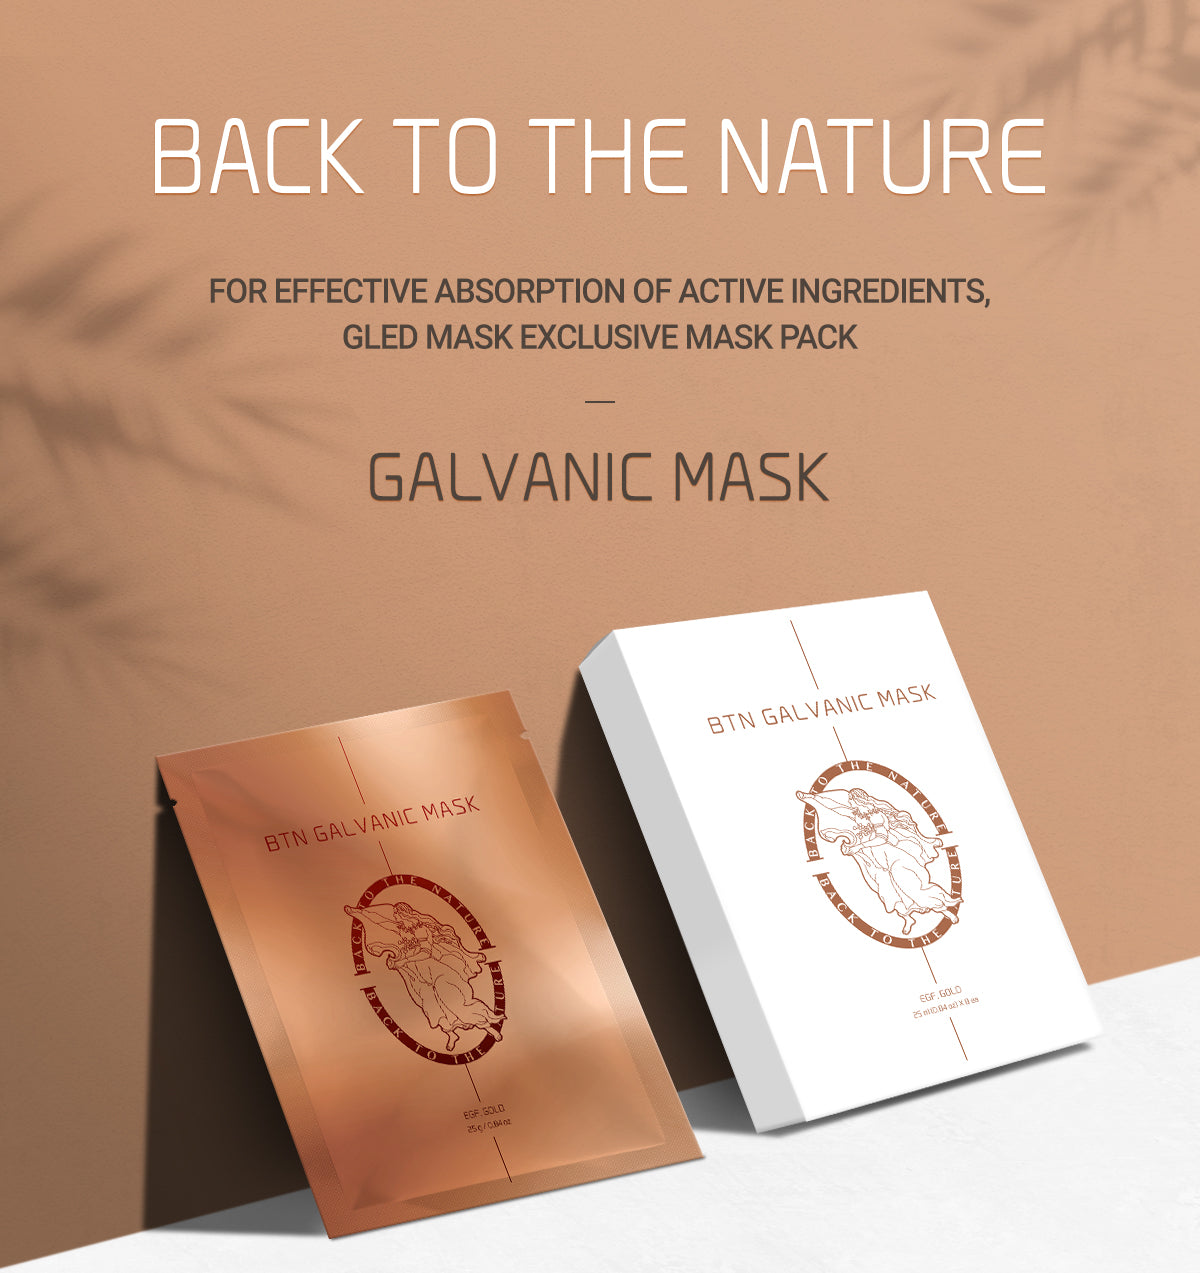 Back to The Nature, For Effective Absorption of Active Ingredients Galvanic Mask